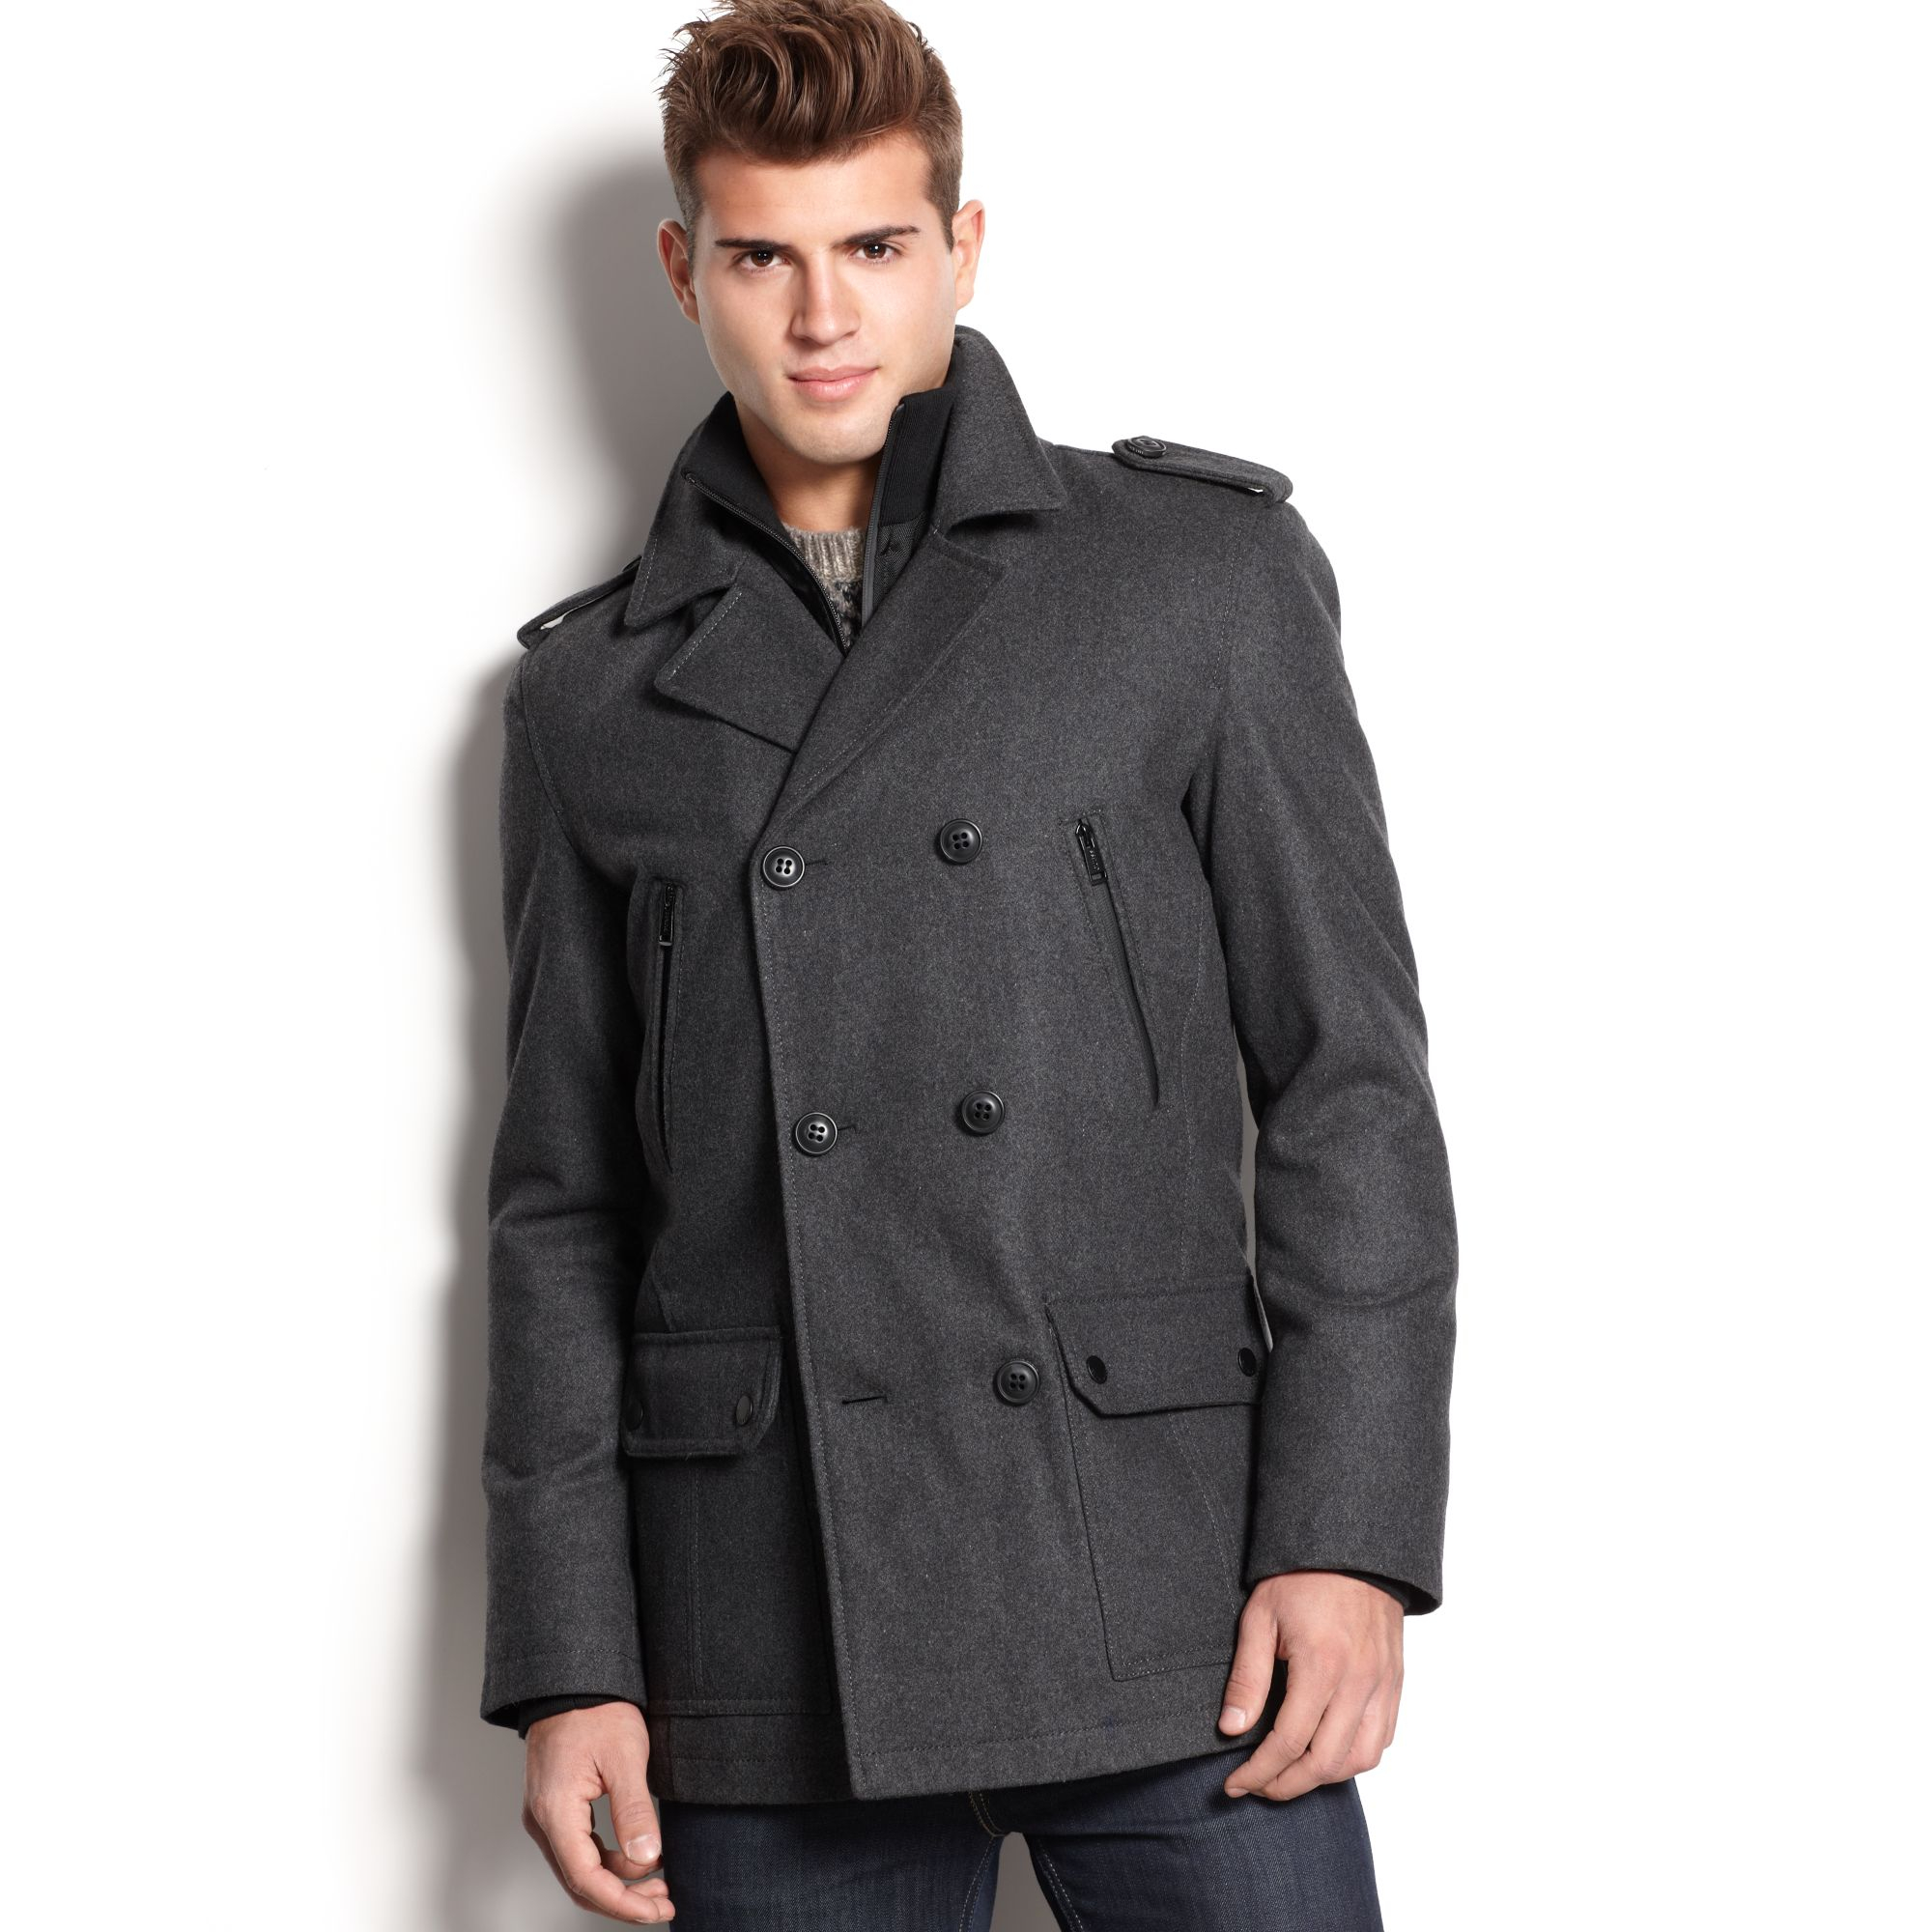 tommy hilfiger mens double breasted pea coat | AmericanMedSupply.com